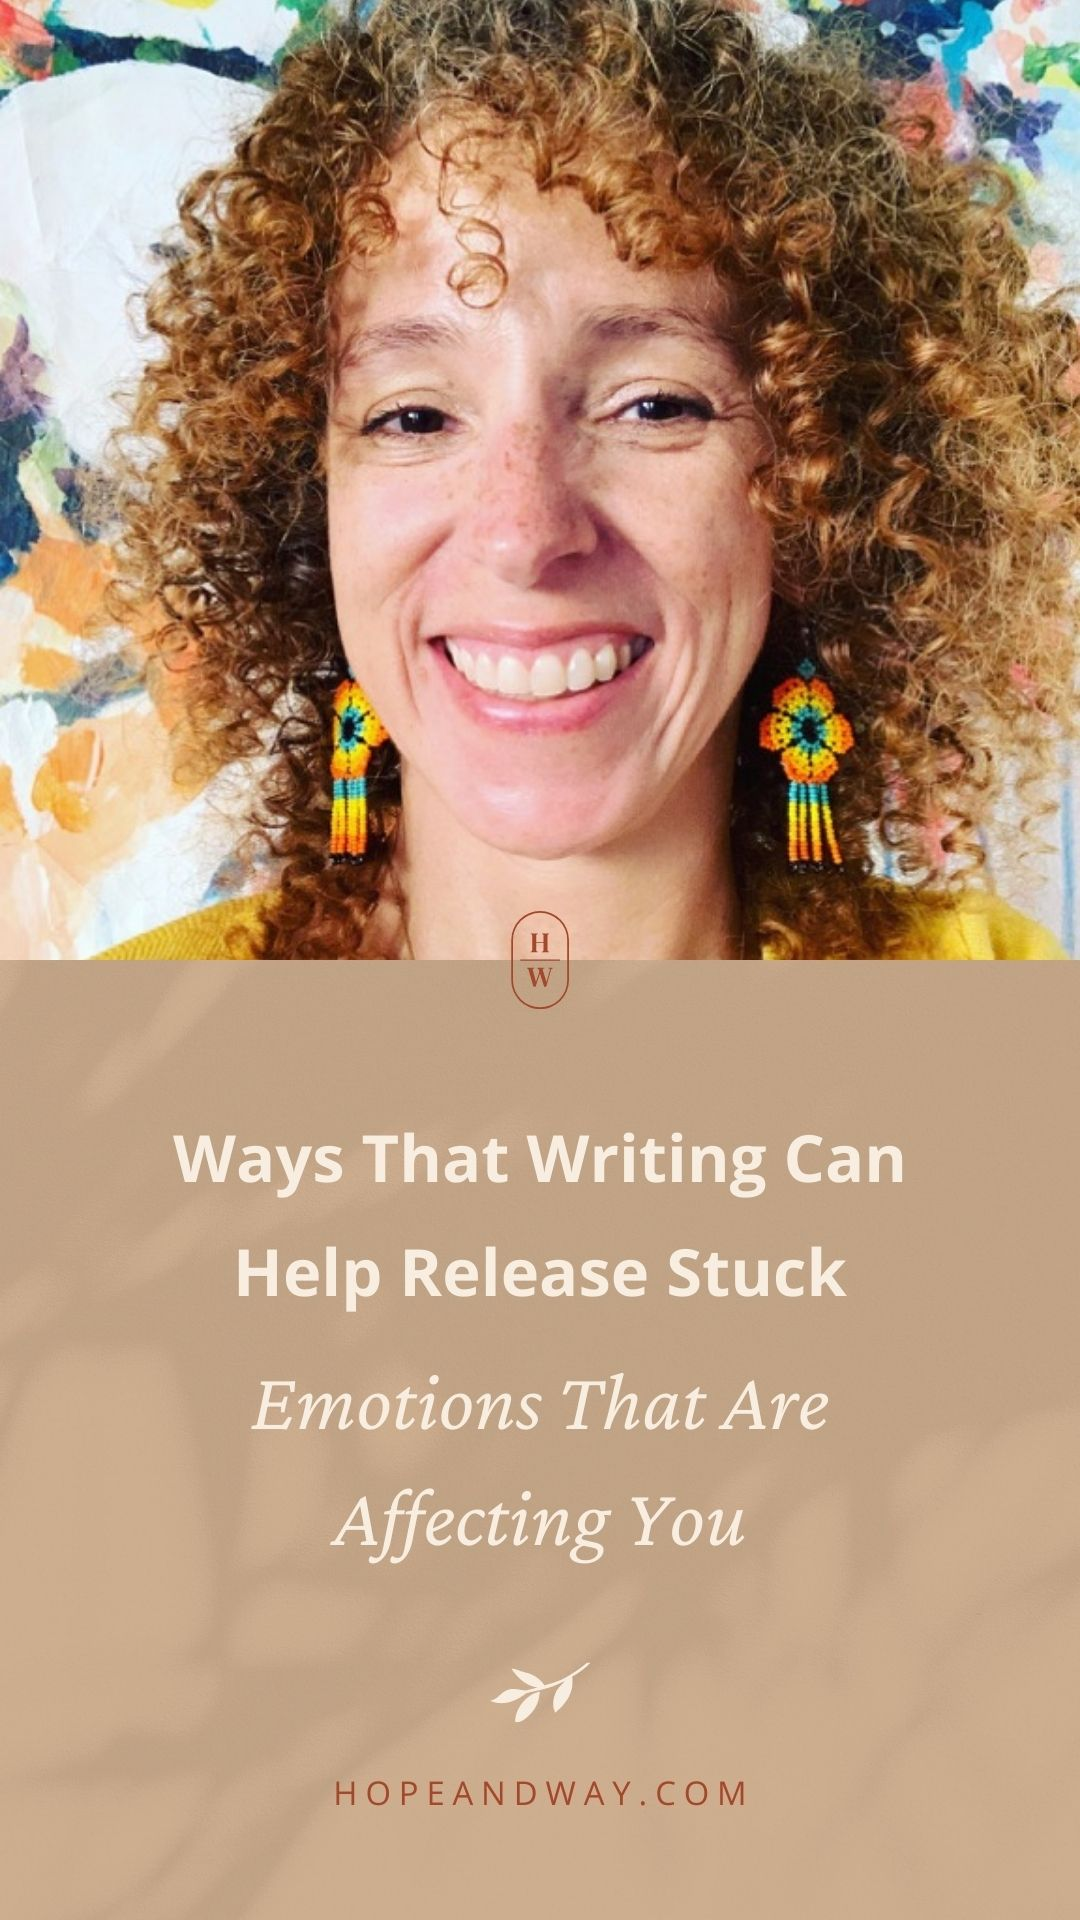 Ways That Writing Can Help Release Stuck Emotions That Are Affecting You – Interview with Angelique Giron